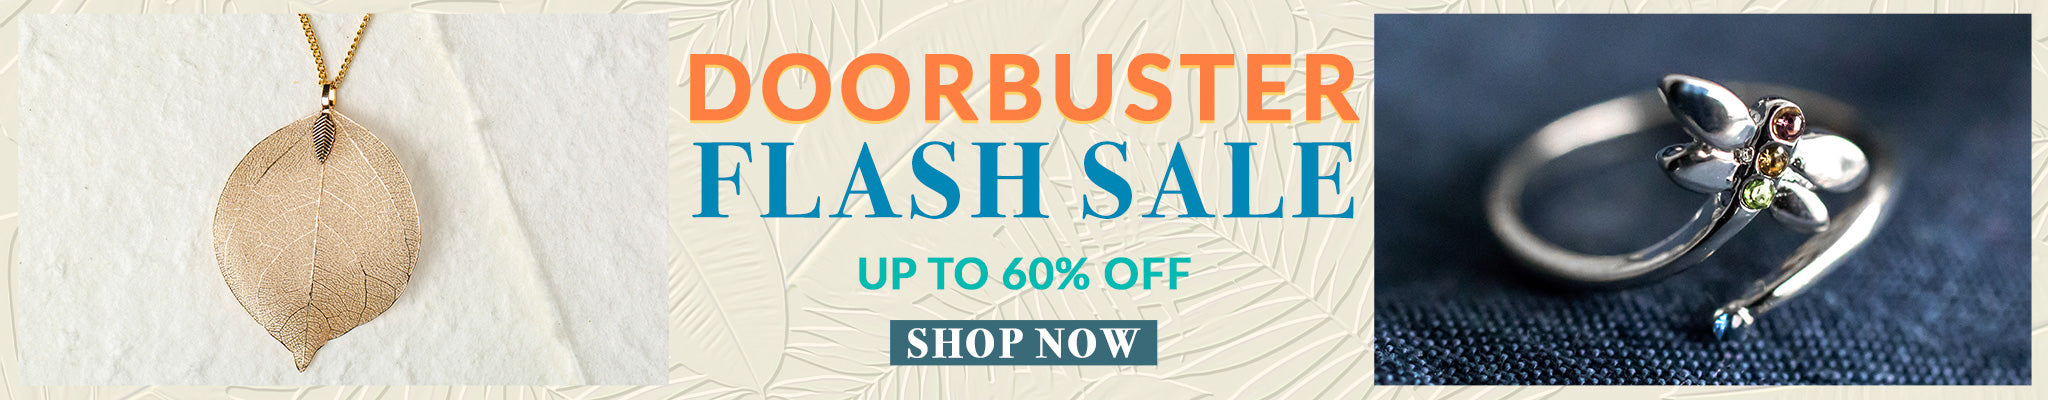 Doorbuster - Flash Sale